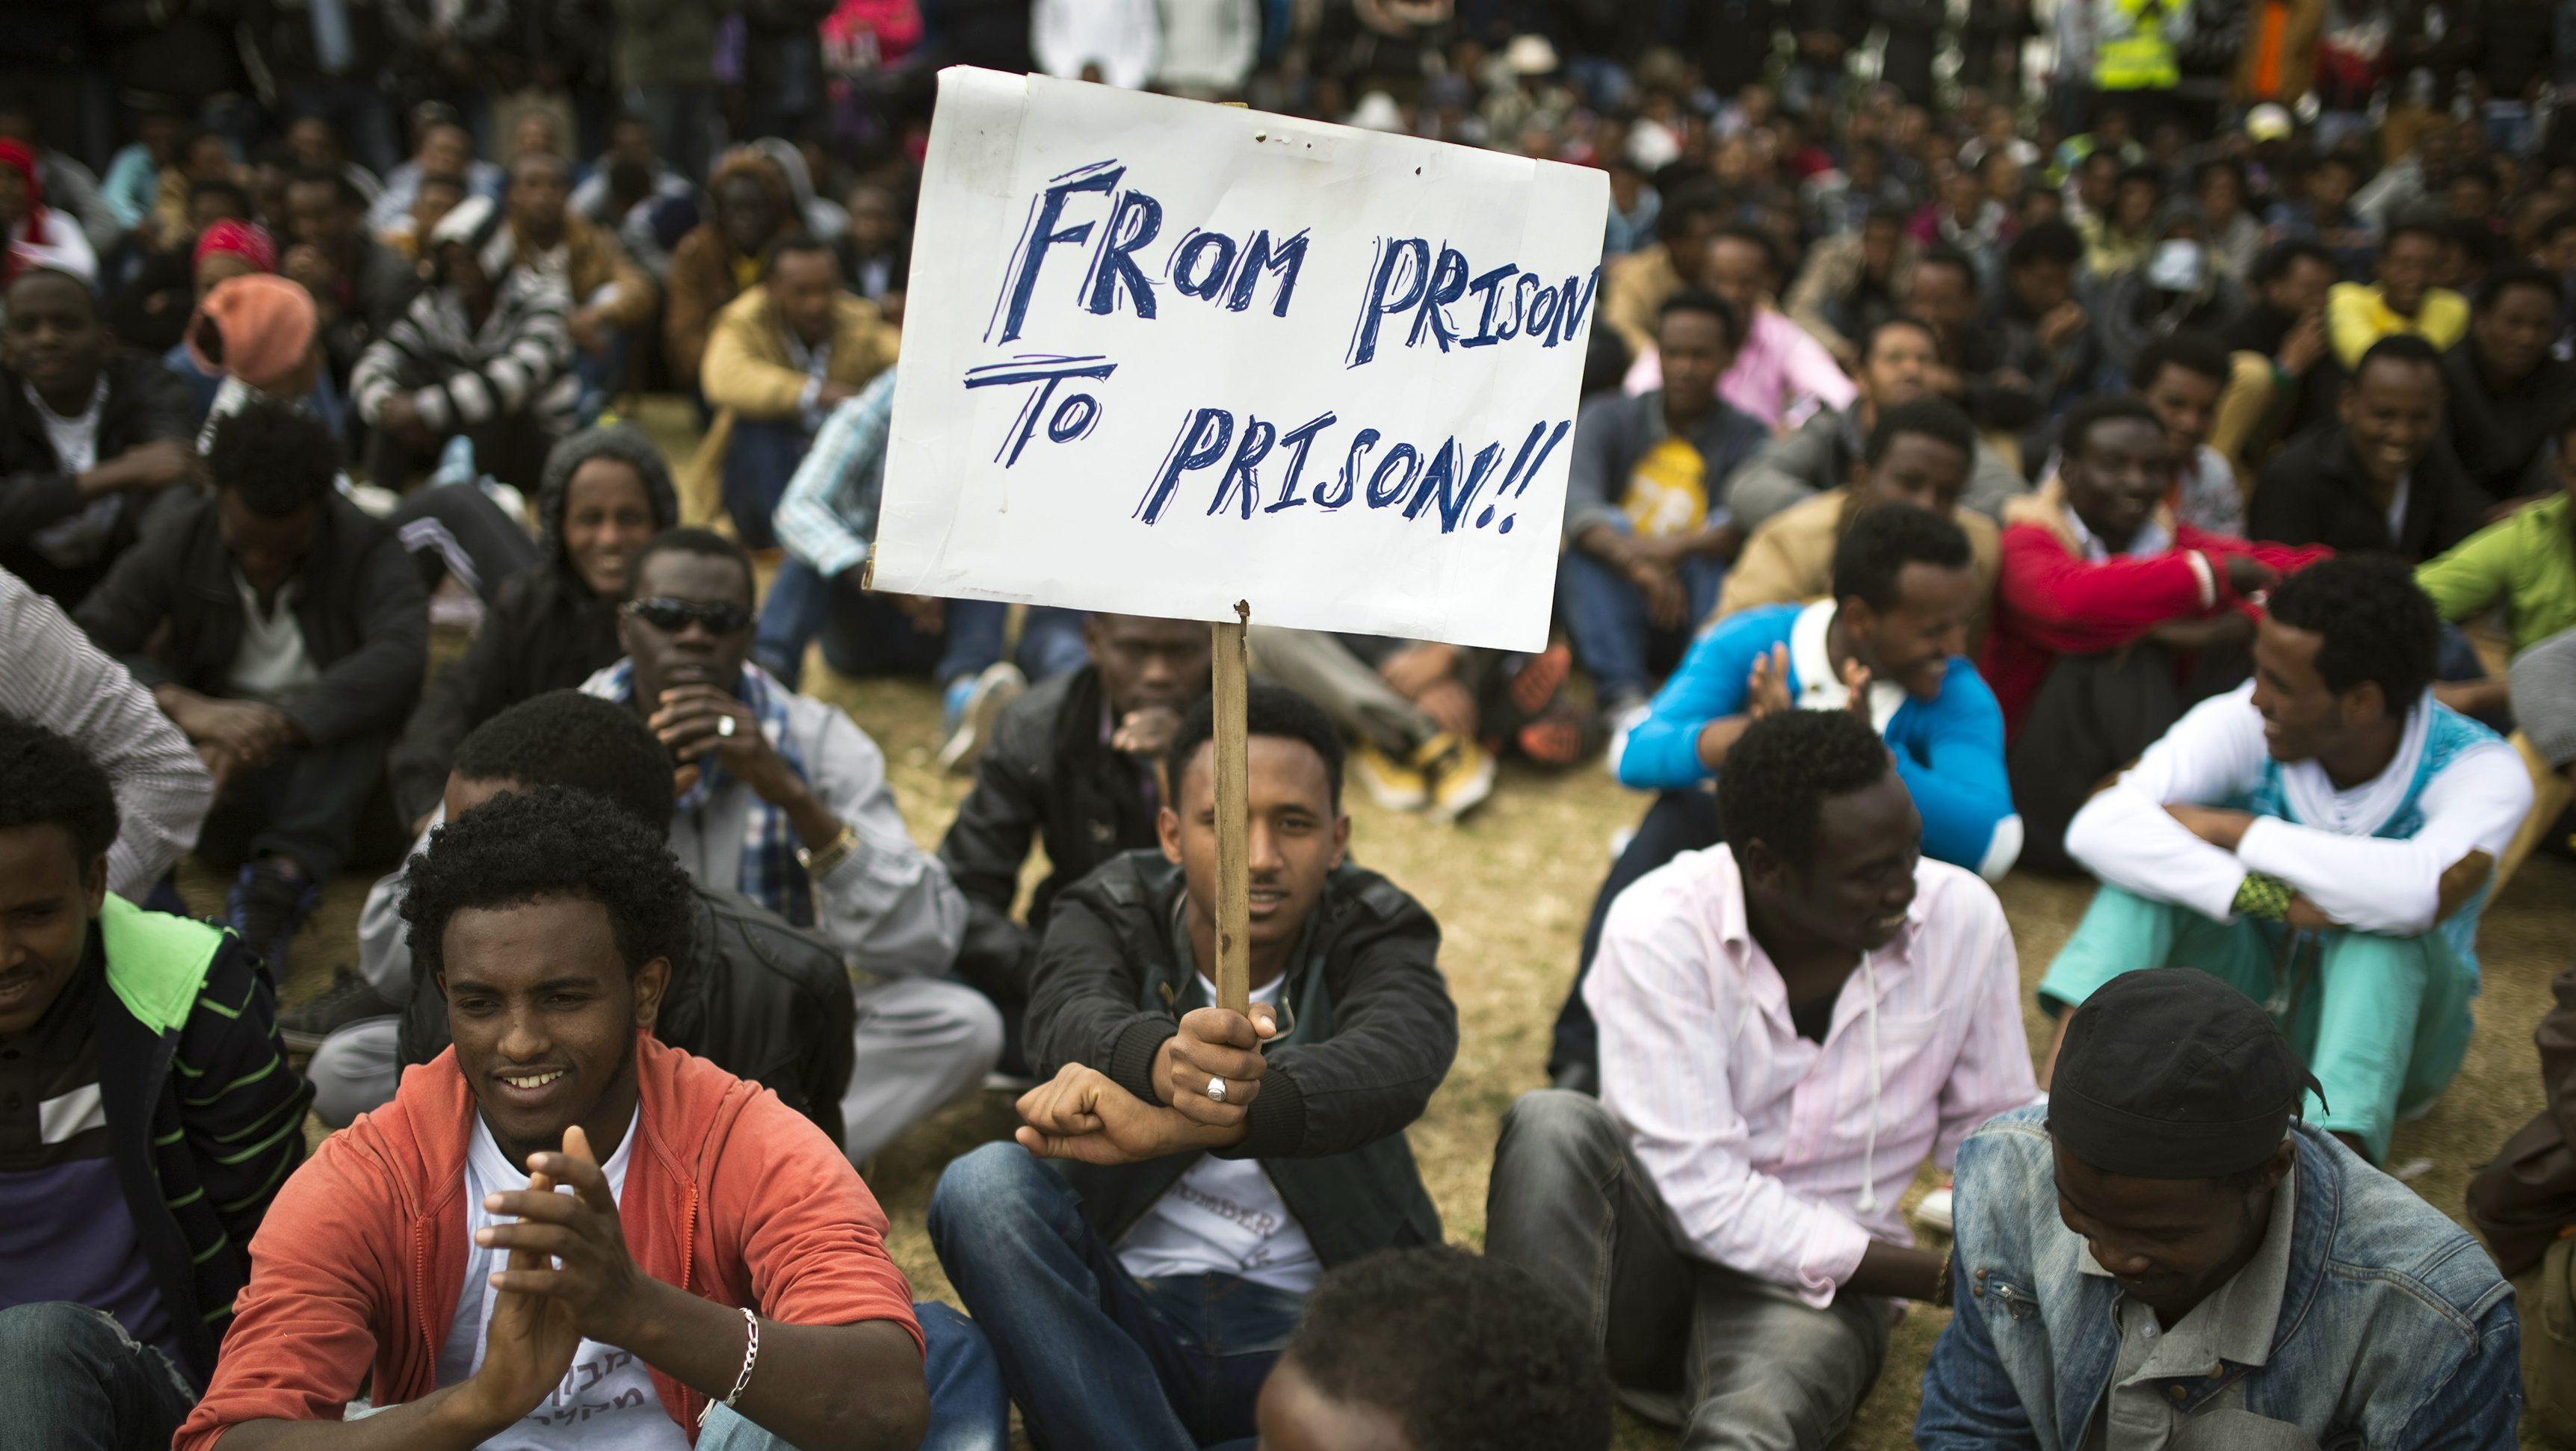 An African migrant holds a placard at Tel Aviv's Levinsky park, January 9, 2014, on the fifth consecutive day of protests against Israel's detention policy toward migrants it sees as illegal job-seekers. Israel passed a law three weeks ago allowing for indefinite detention of migrants without valid visas while it pursues efforts to persuade them to leave or enlist other countries to take them in.